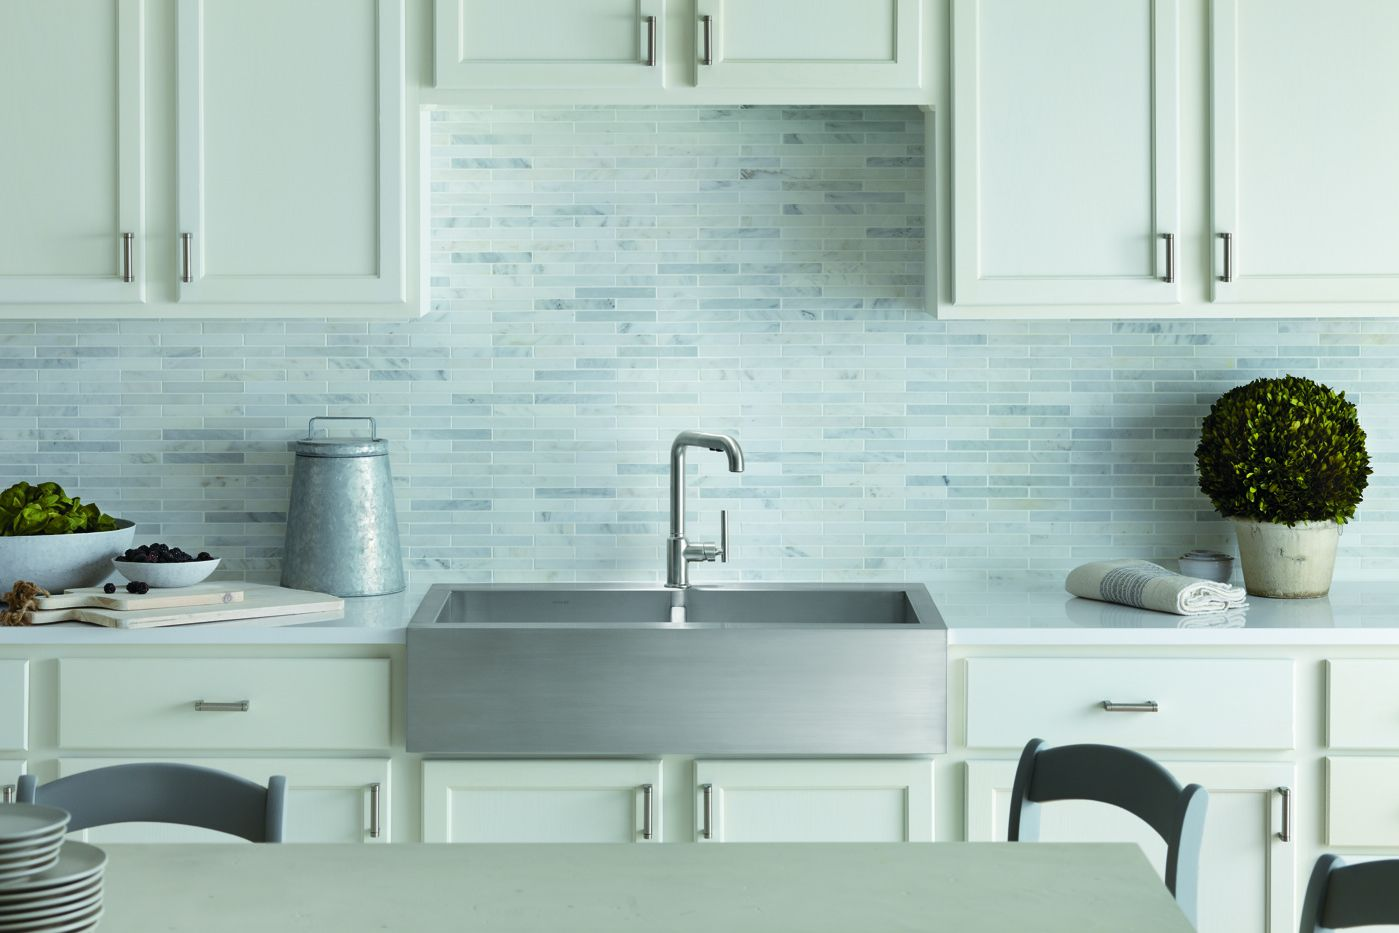 Great sink, I like the tiles in muted colors too | Kitchen ...